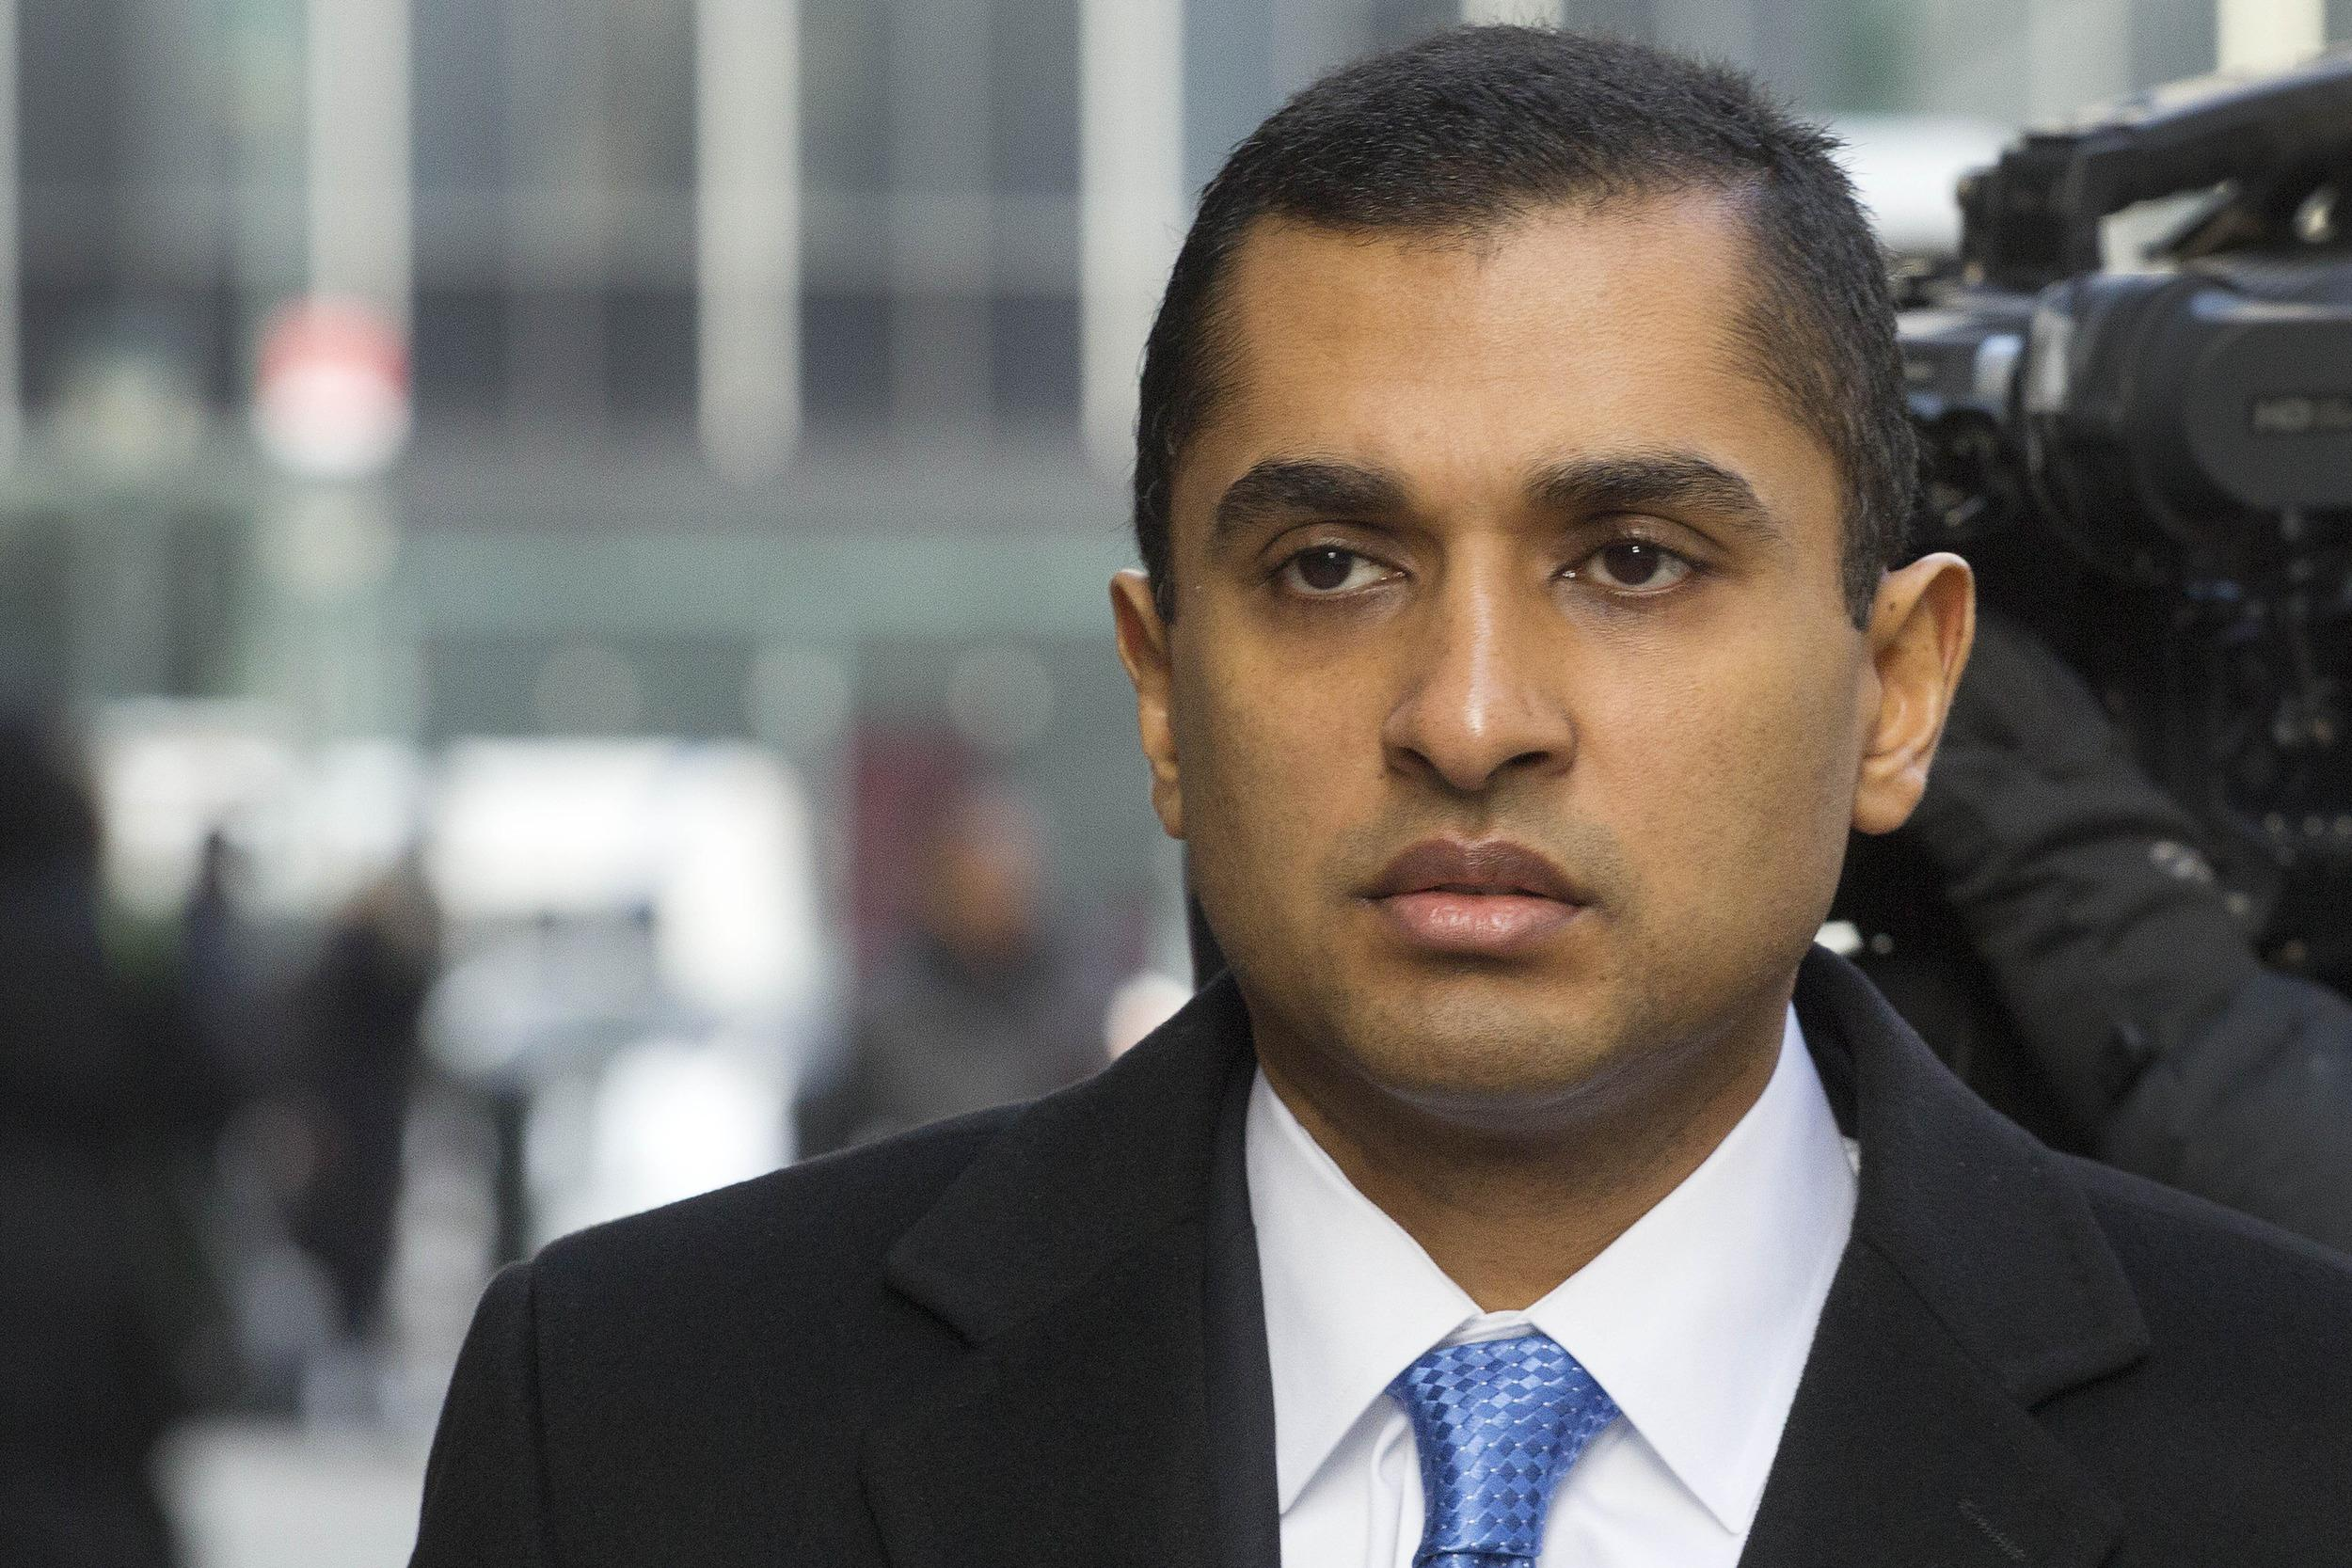 Mathew Martoma, a former SAC Capital portfolio manager, was found guilty of insider trading.